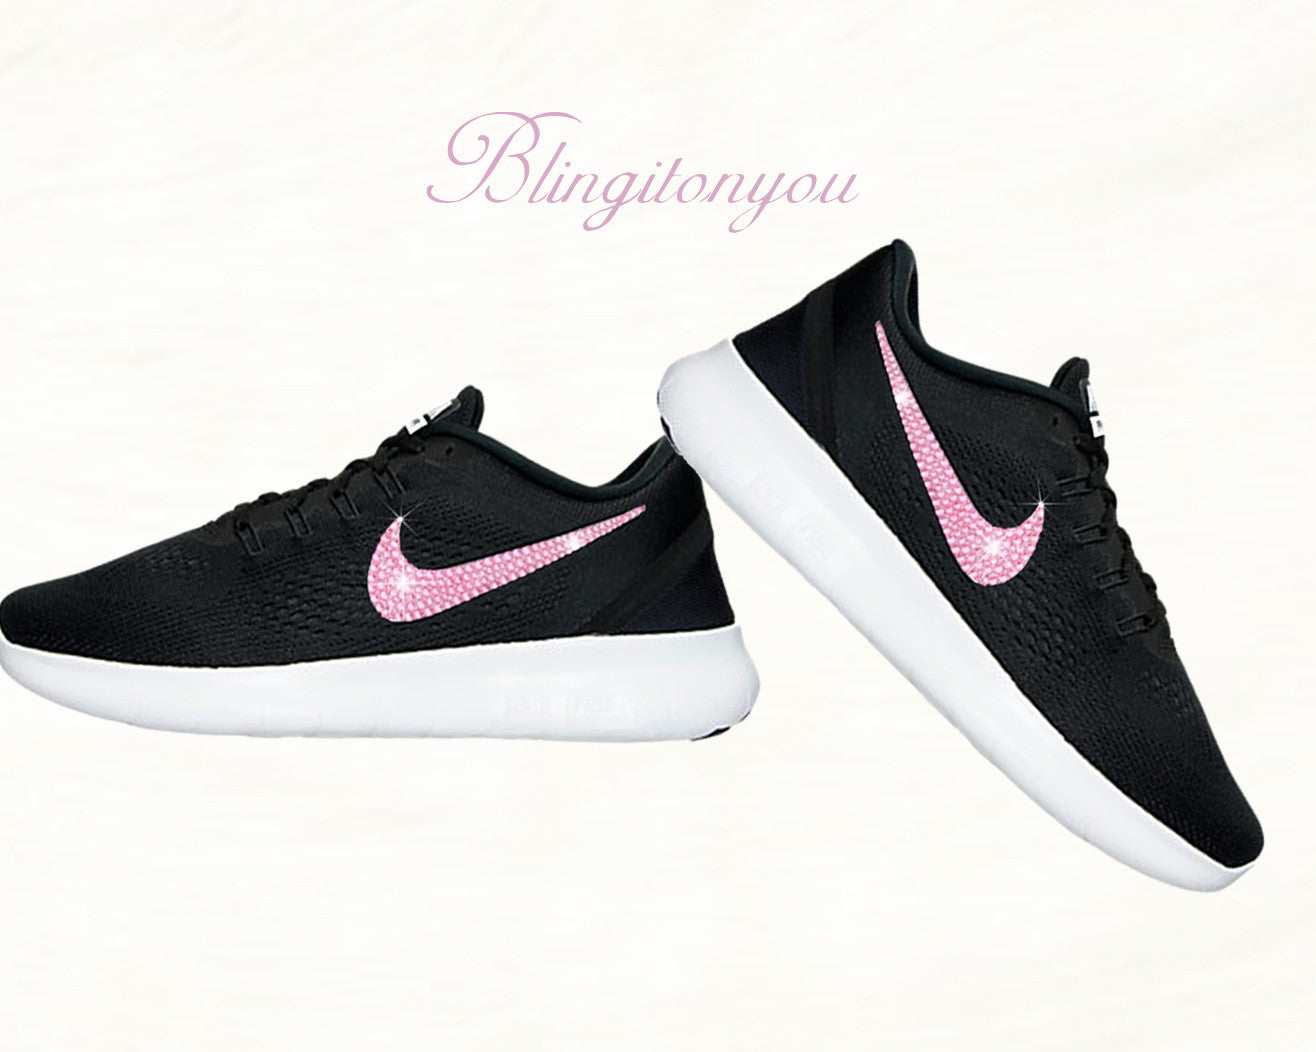 261a394952ae4f Black and White Nike Women s Free RN Running Shoes Blinged with Pink  Swarovski Crystals